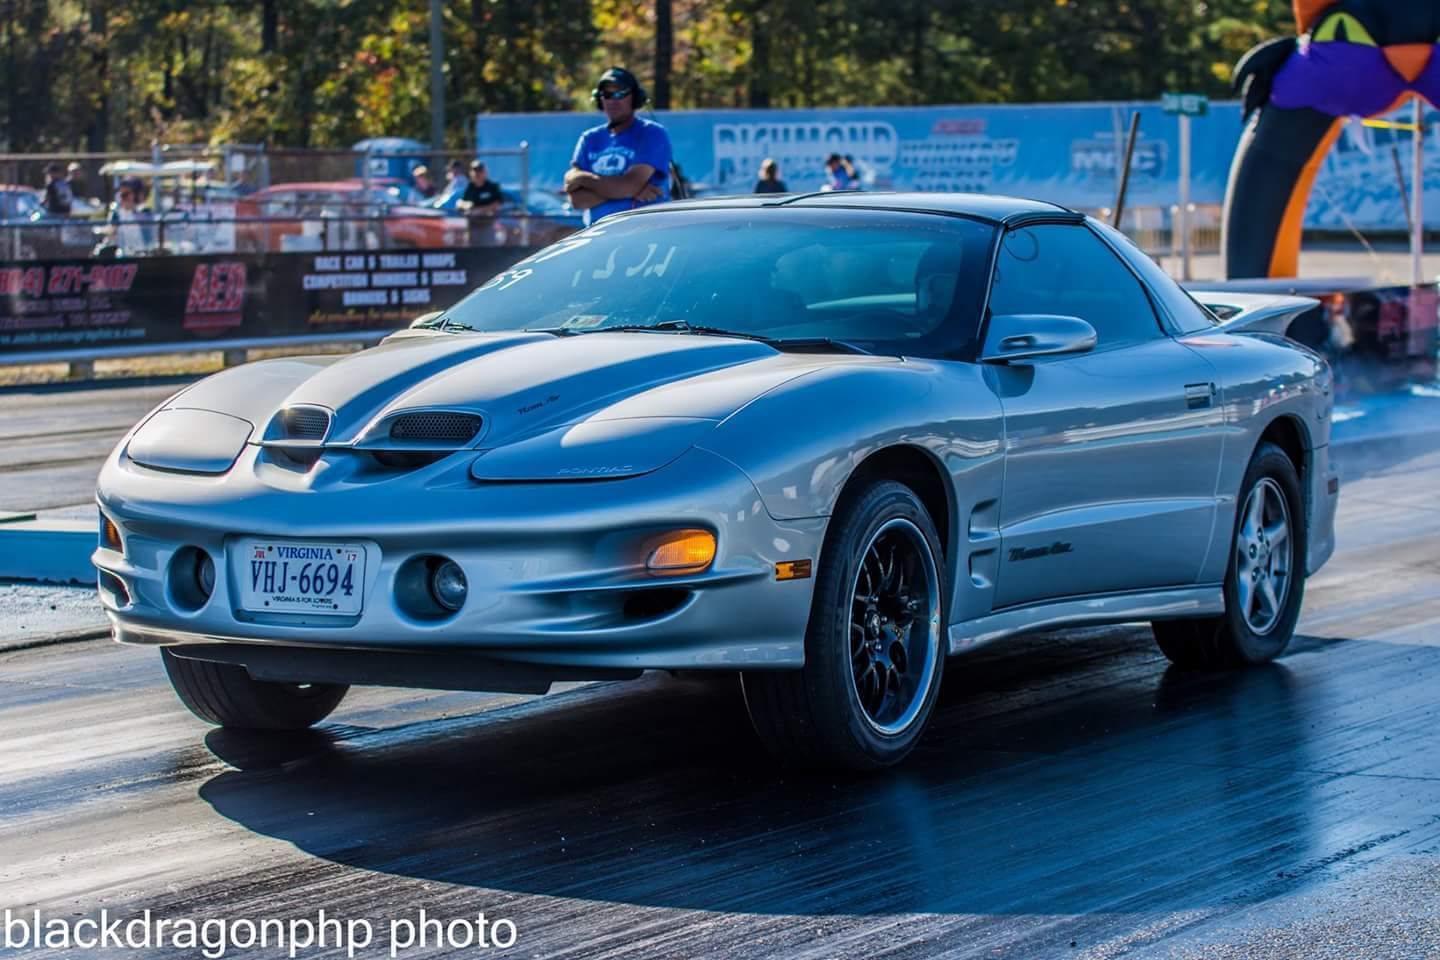 2000 pontiac trans am ws6 1 4 mile drag racing timeslip specs 0 60. Black Bedroom Furniture Sets. Home Design Ideas